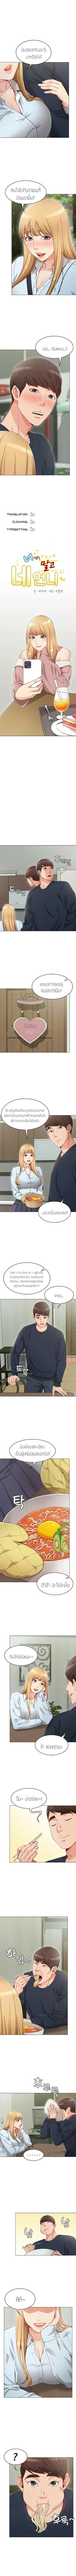 Not you, But Your Sister - หน้า 2